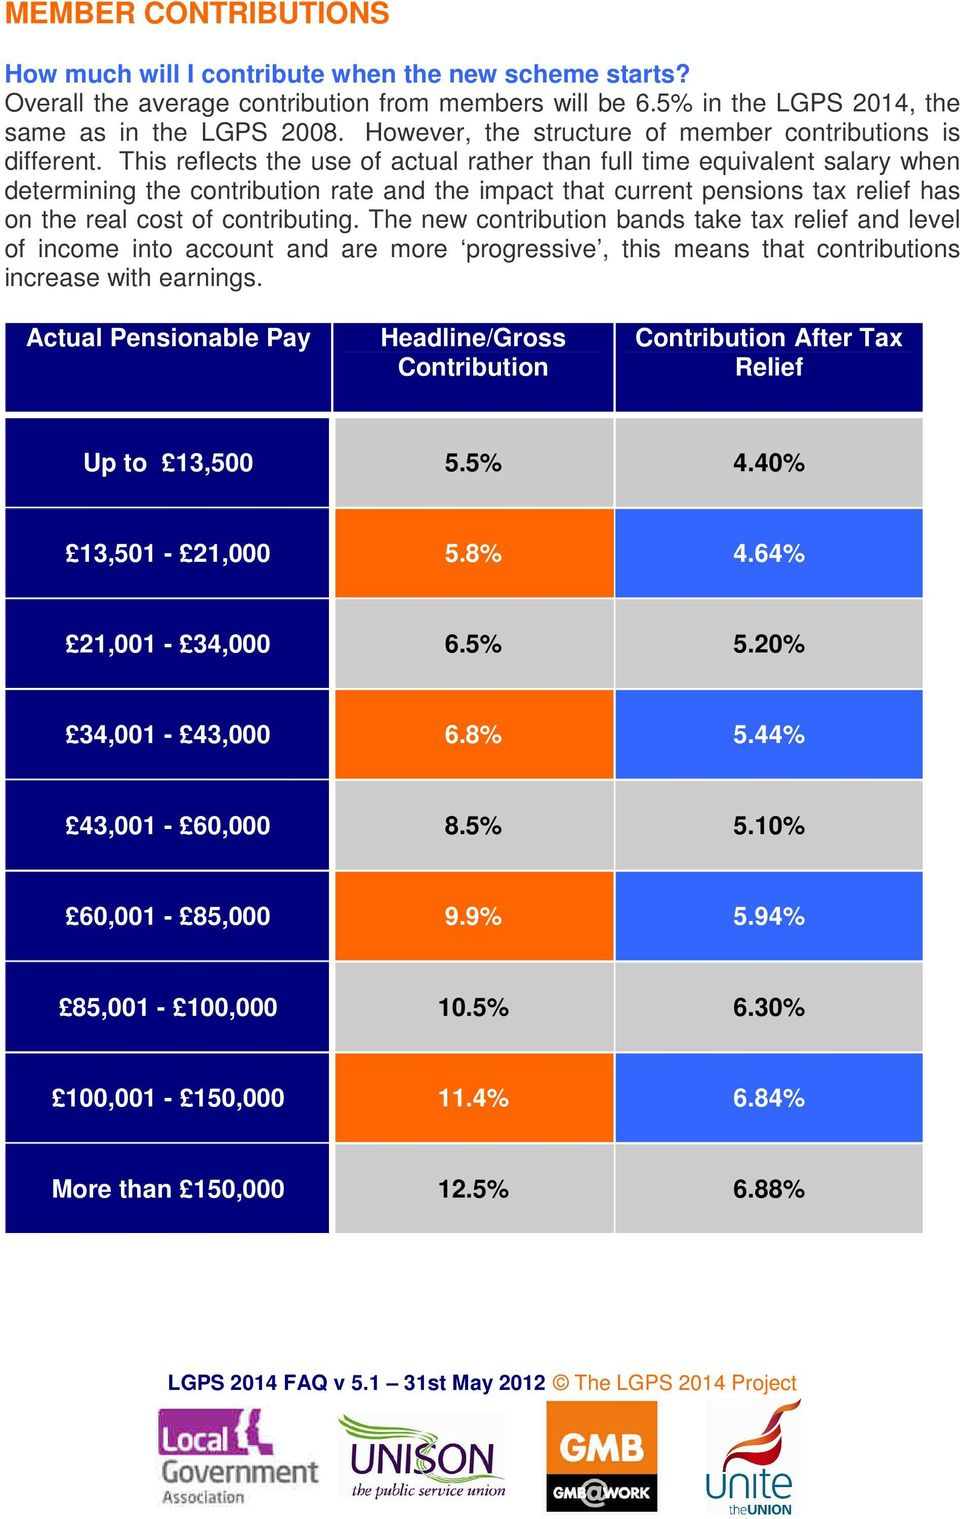 This reflects the use of actual rather than full time equivalent salary when determining the contribution rate and the impact that current pensions tax relief has on the real cost of contributing.